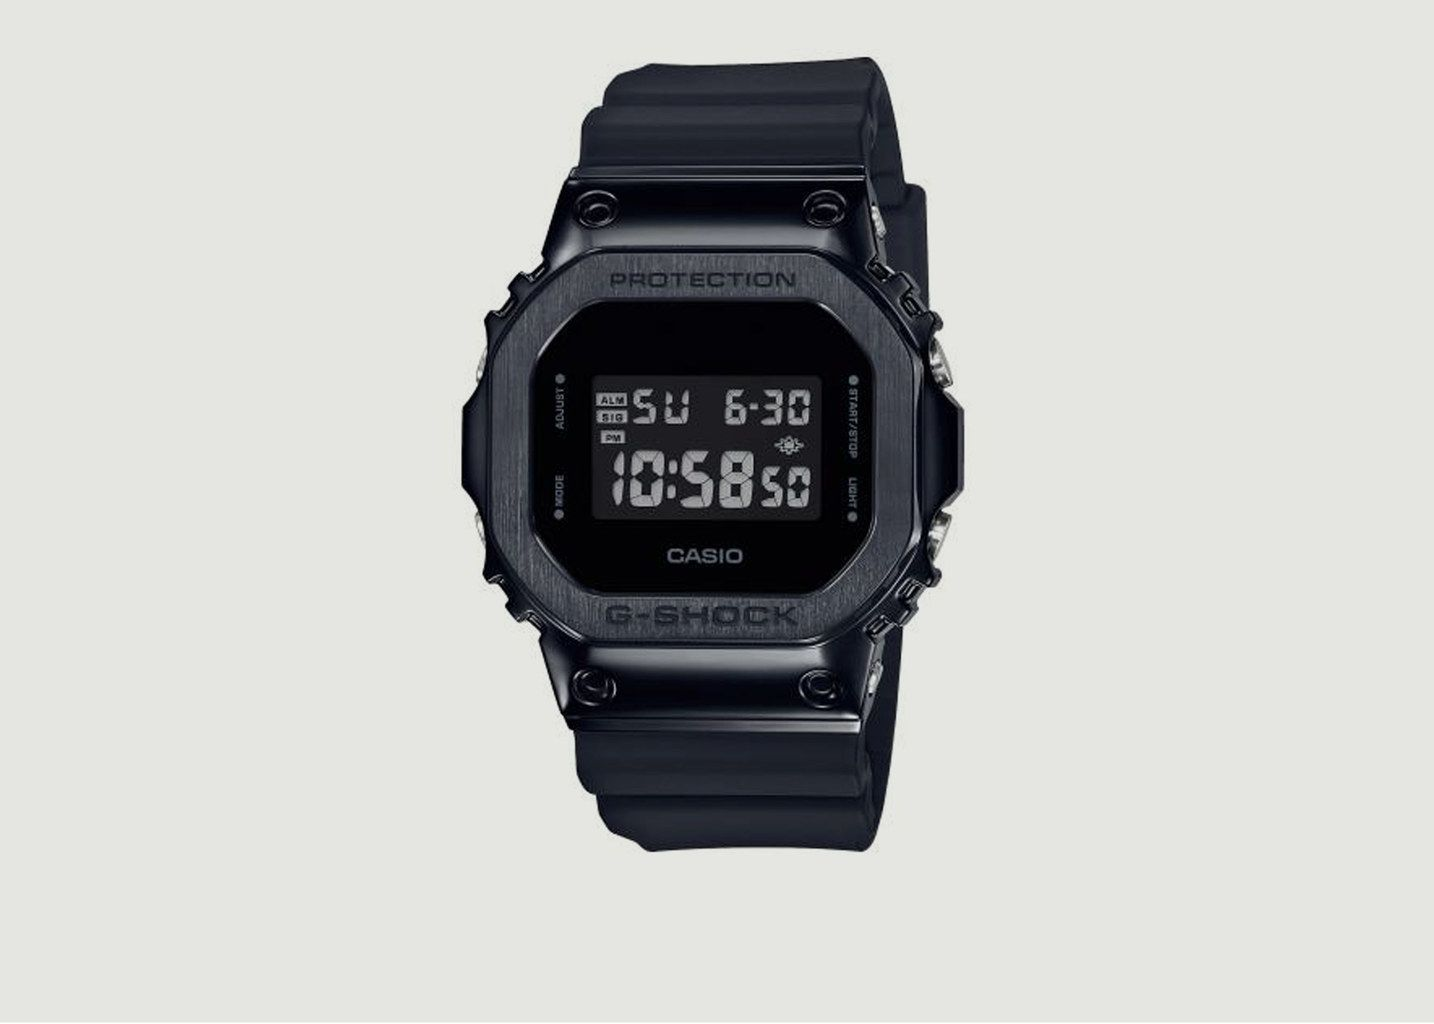 Montre G-SHOCK The Origin GM-5600B - Casio G-SHOCK